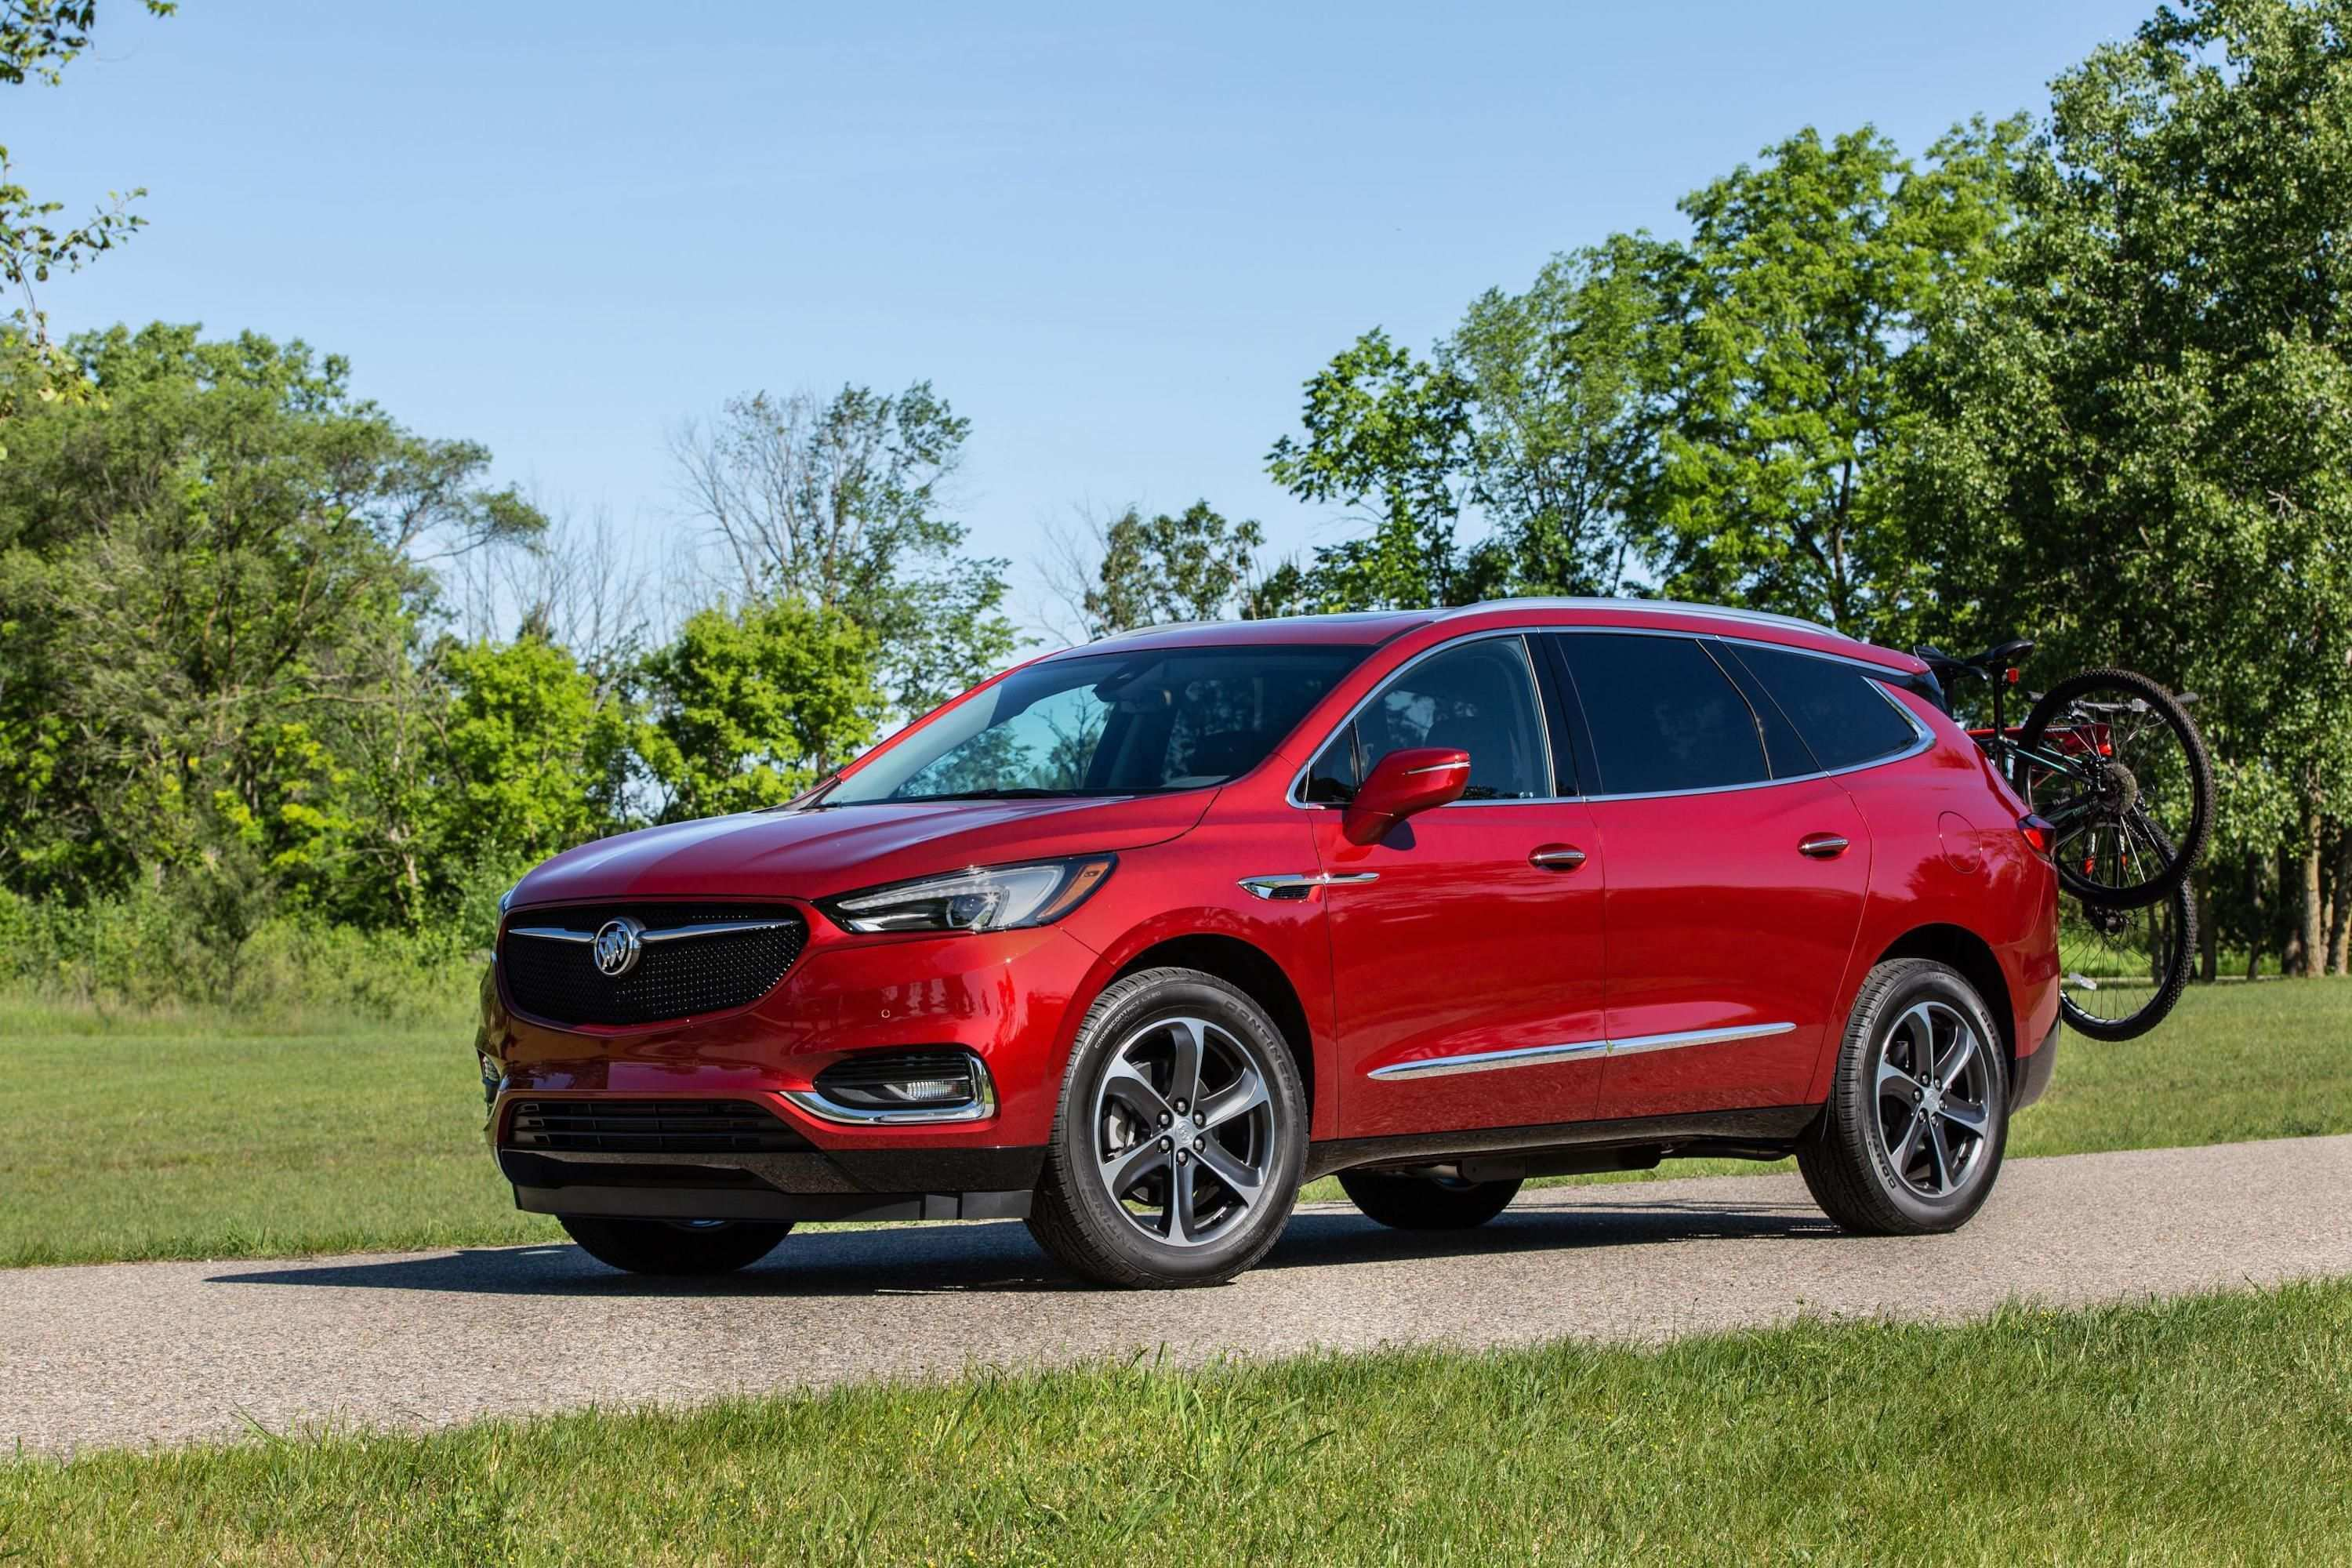 61 Great 2020 Buick Vehicles Overview by 2020 Buick Vehicles